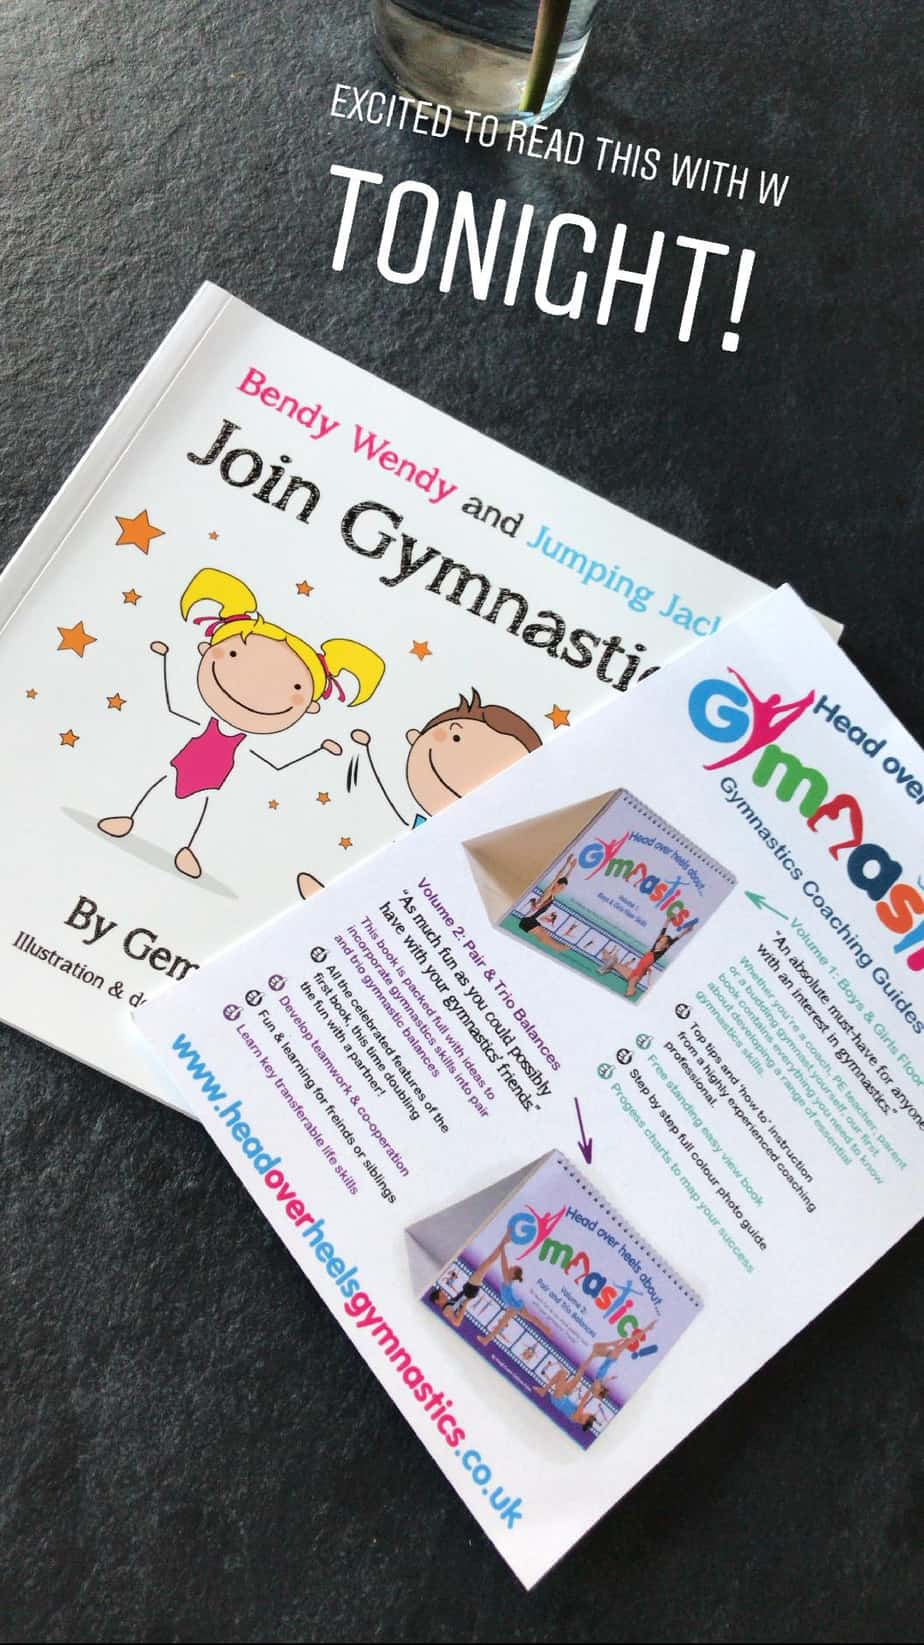 A children's book all about starting a new gymnastics class for Head over Heels Gymnastics